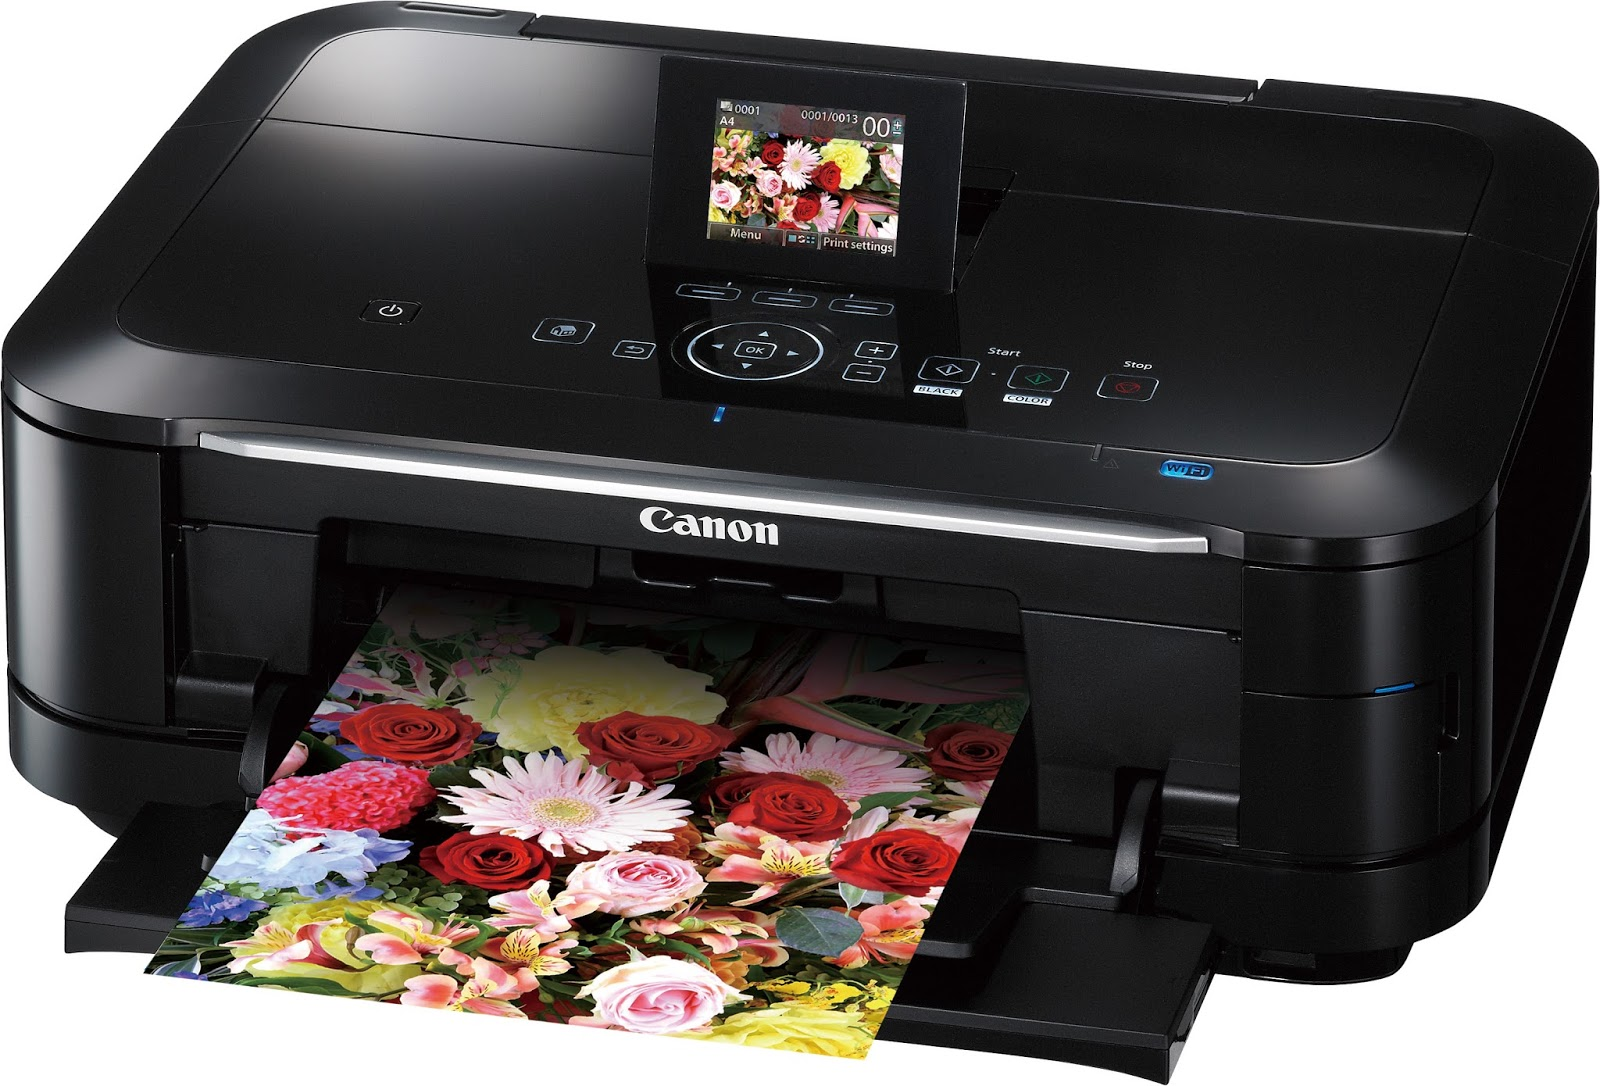 Related Article Canon PIXMA MG6100 Driver Download - Mac Windows Linux